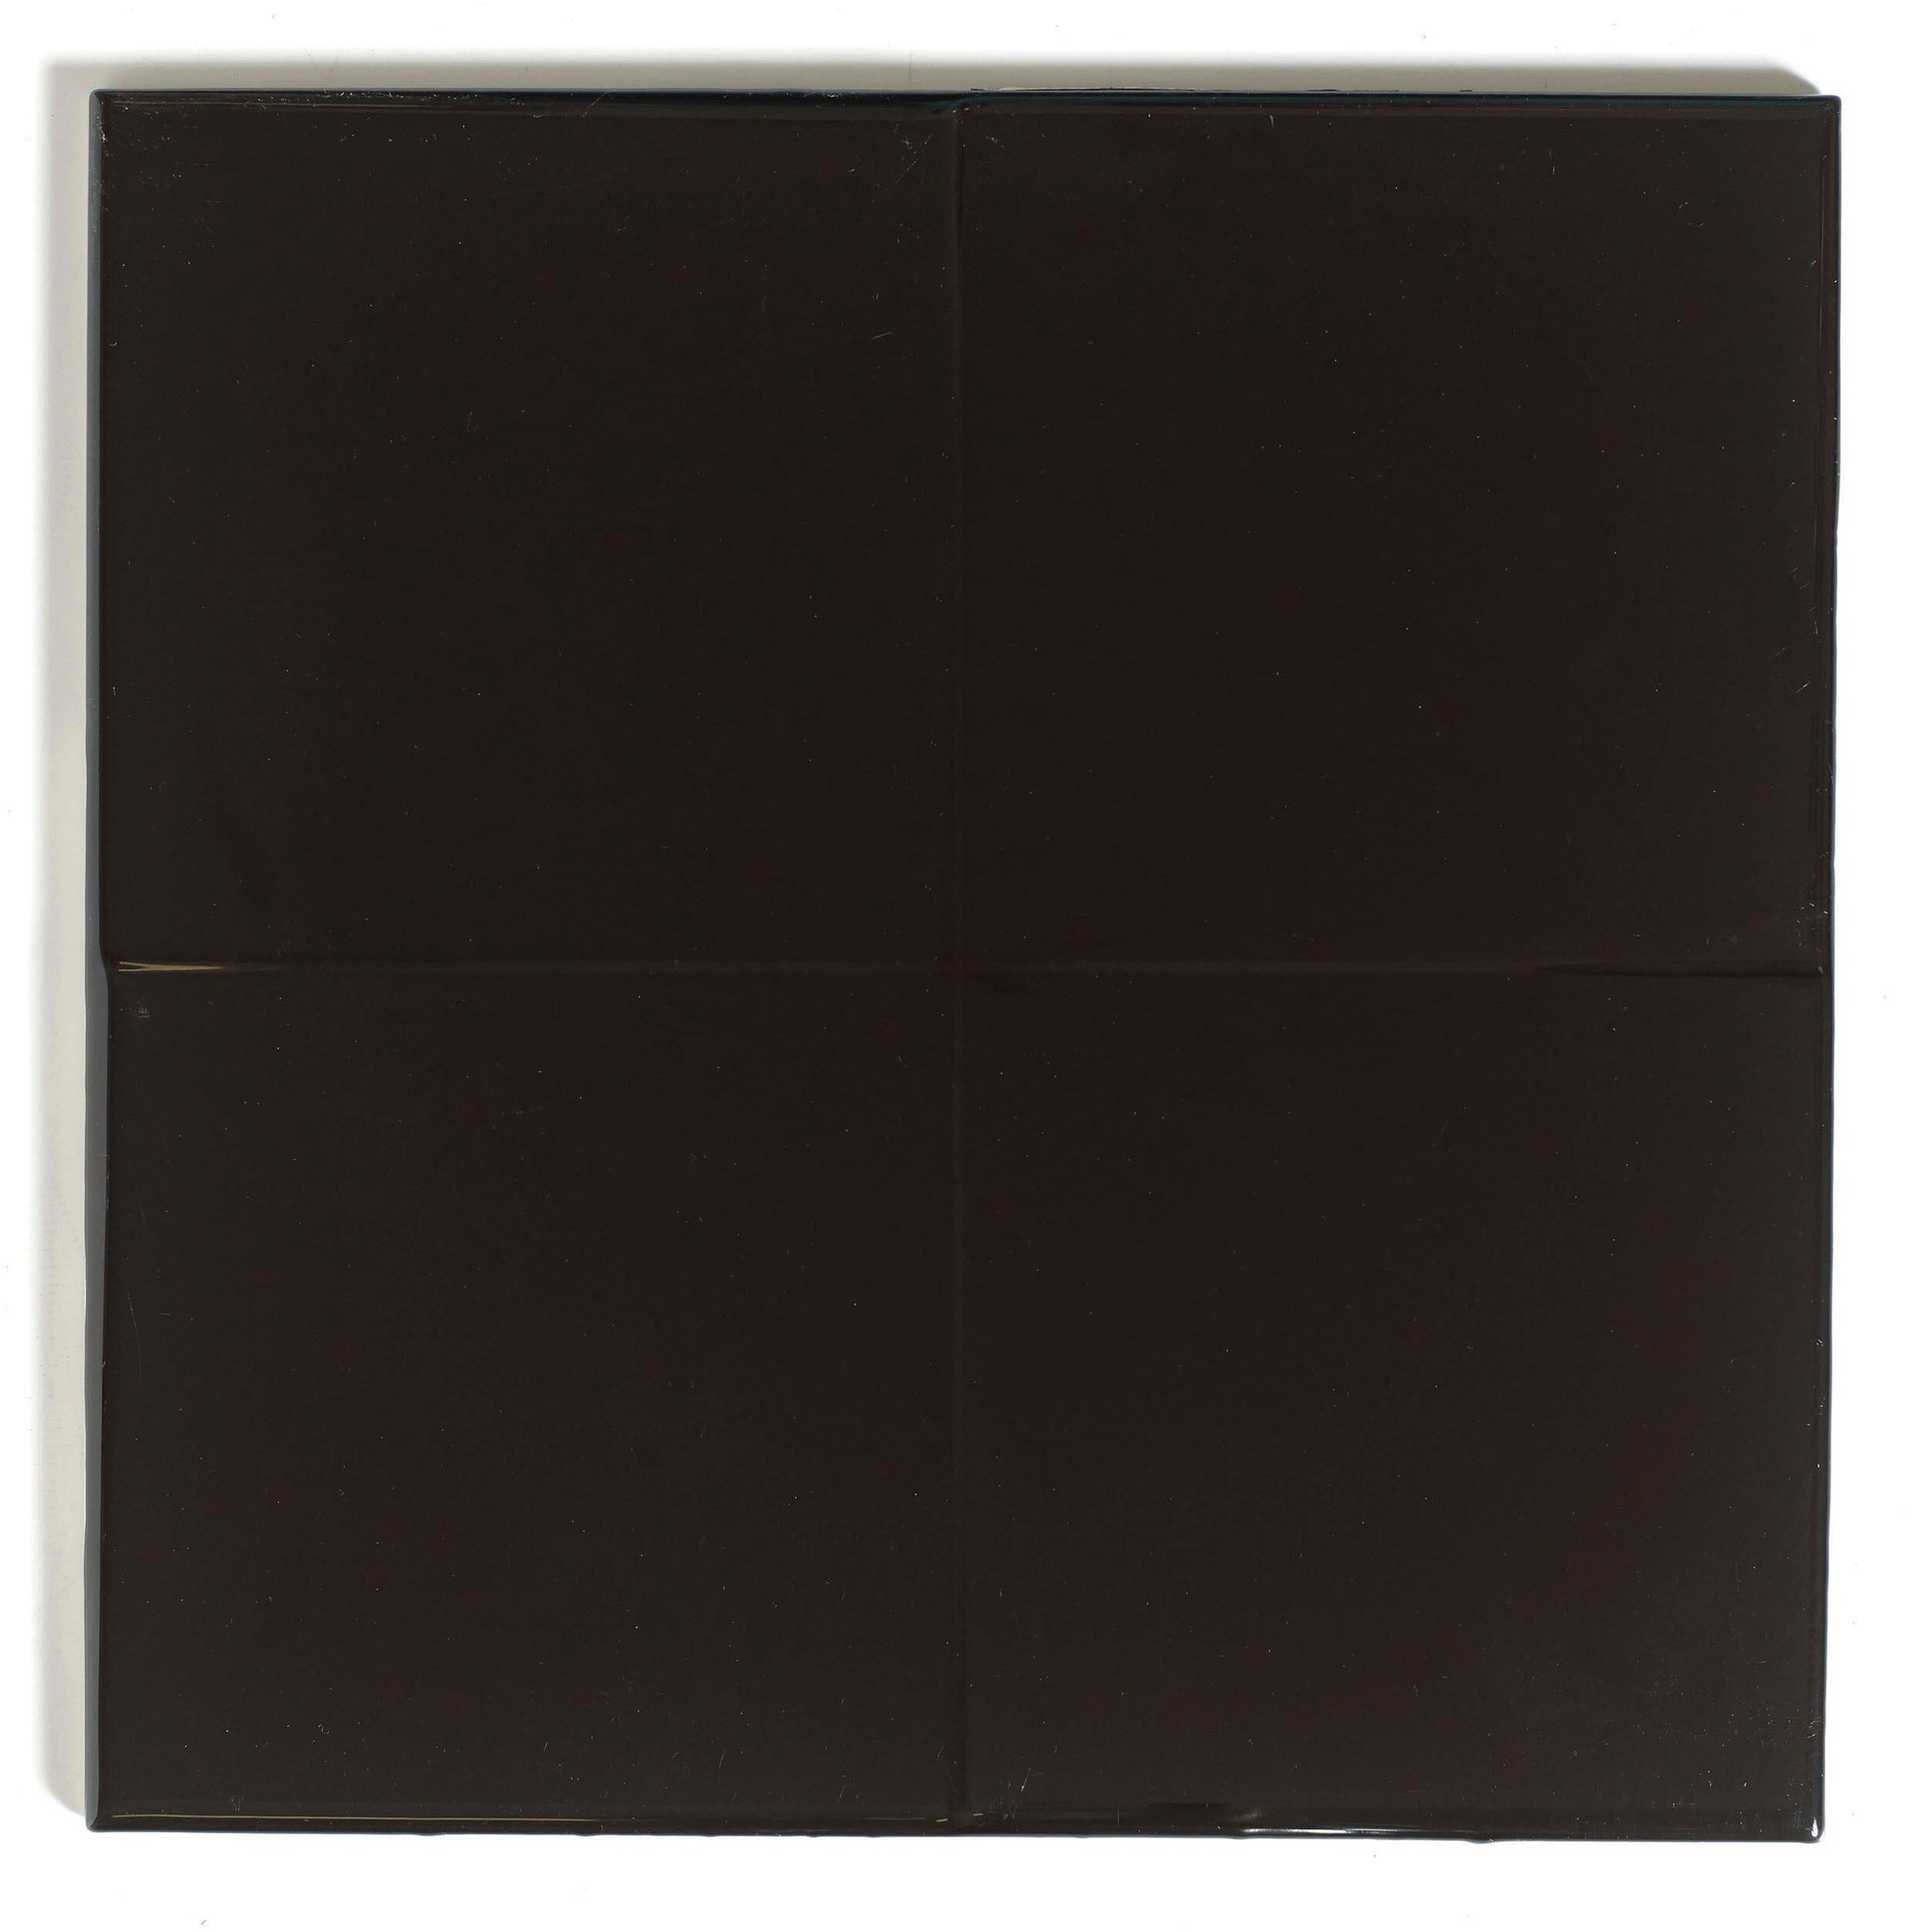 Piastrella per rivestimenti Brillant 15 x 15 cm sp. 6.5 mm nero - 6